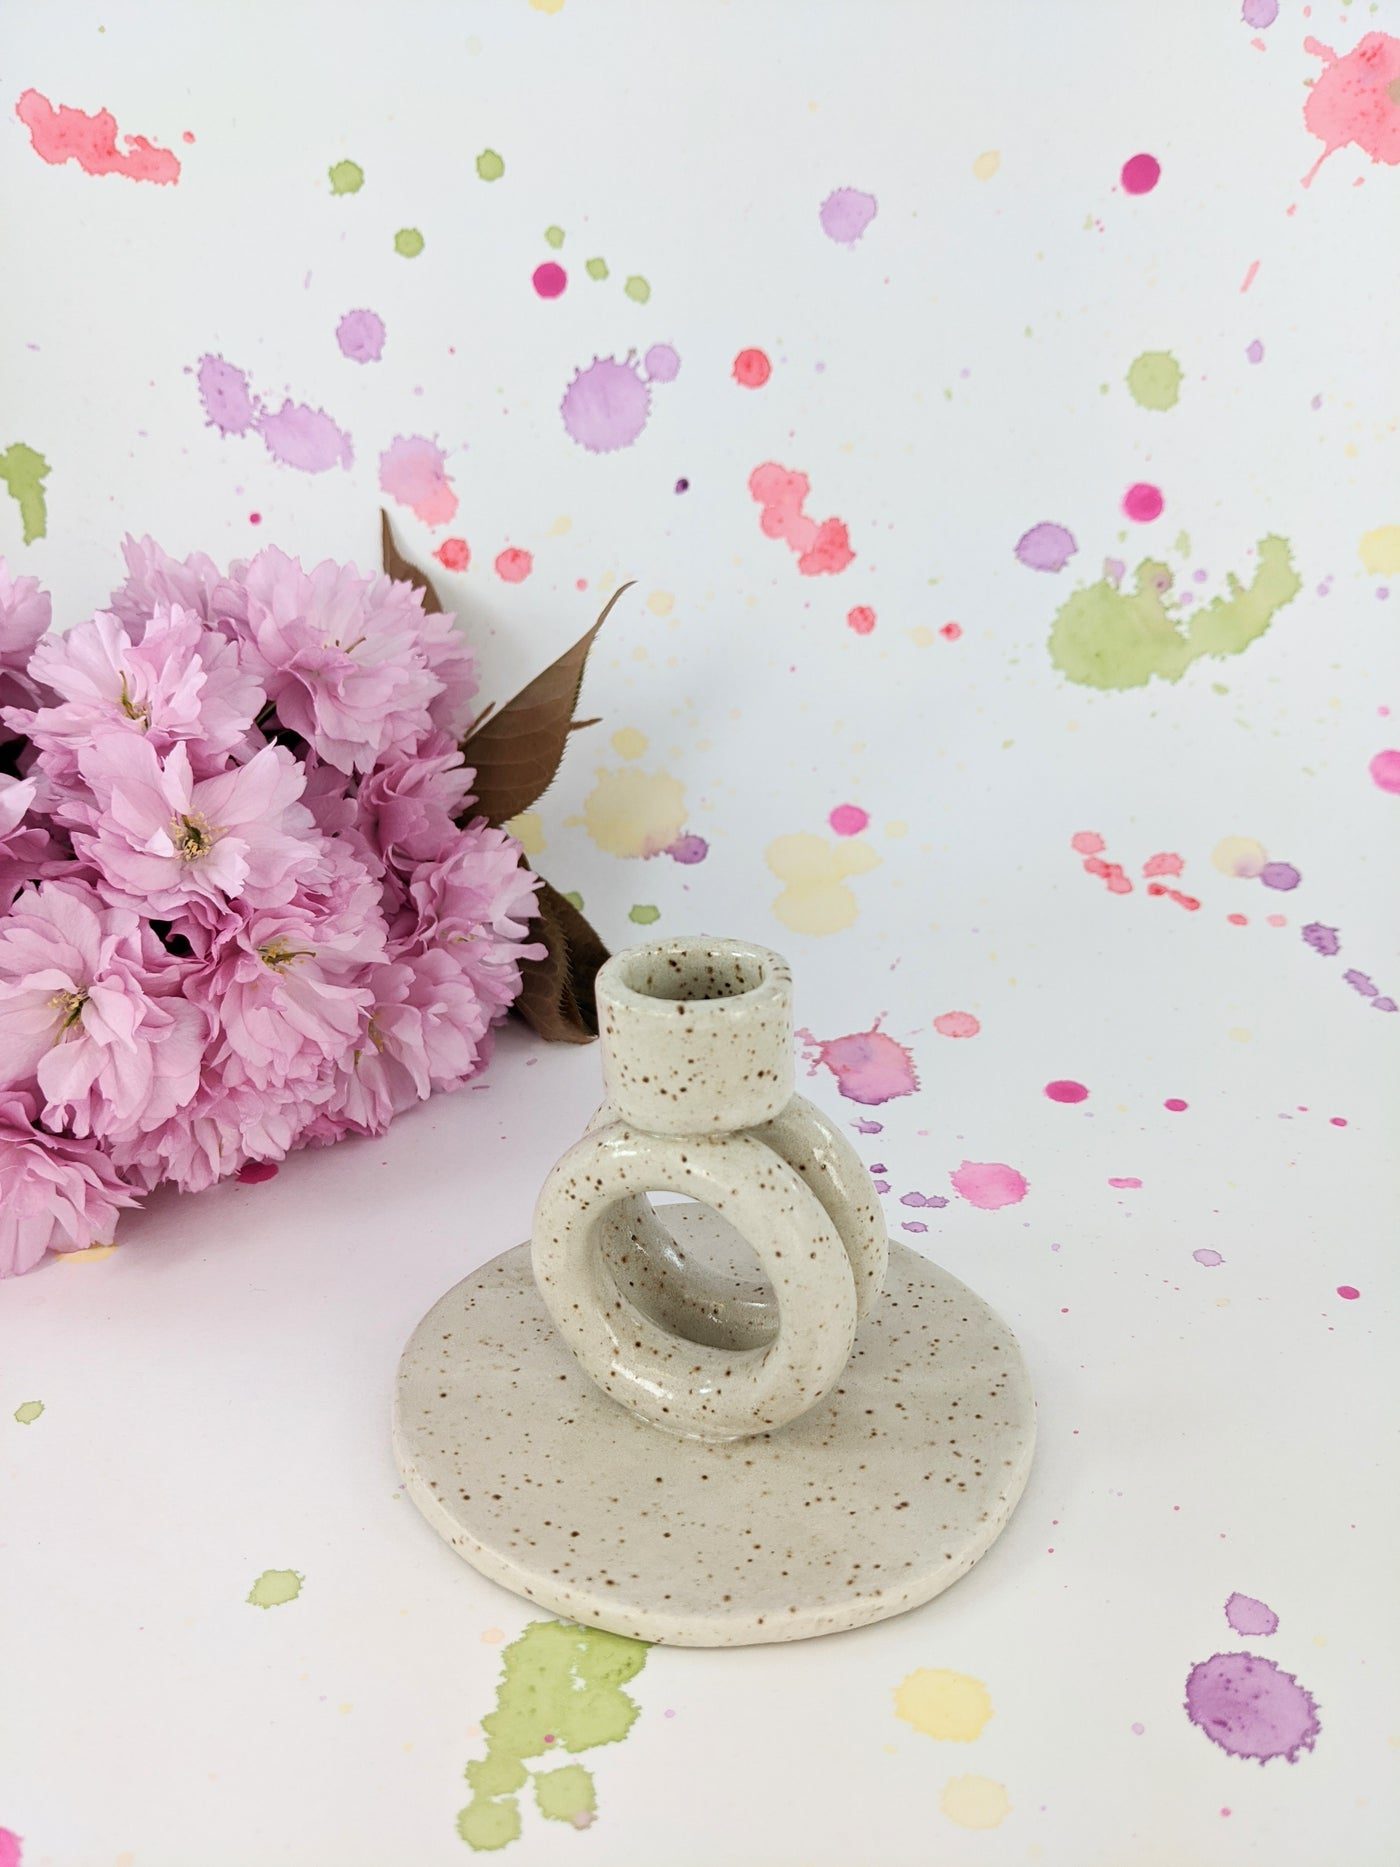 Speckled ceramic candle holder by Lovely Things Vintage available at Local Assembly